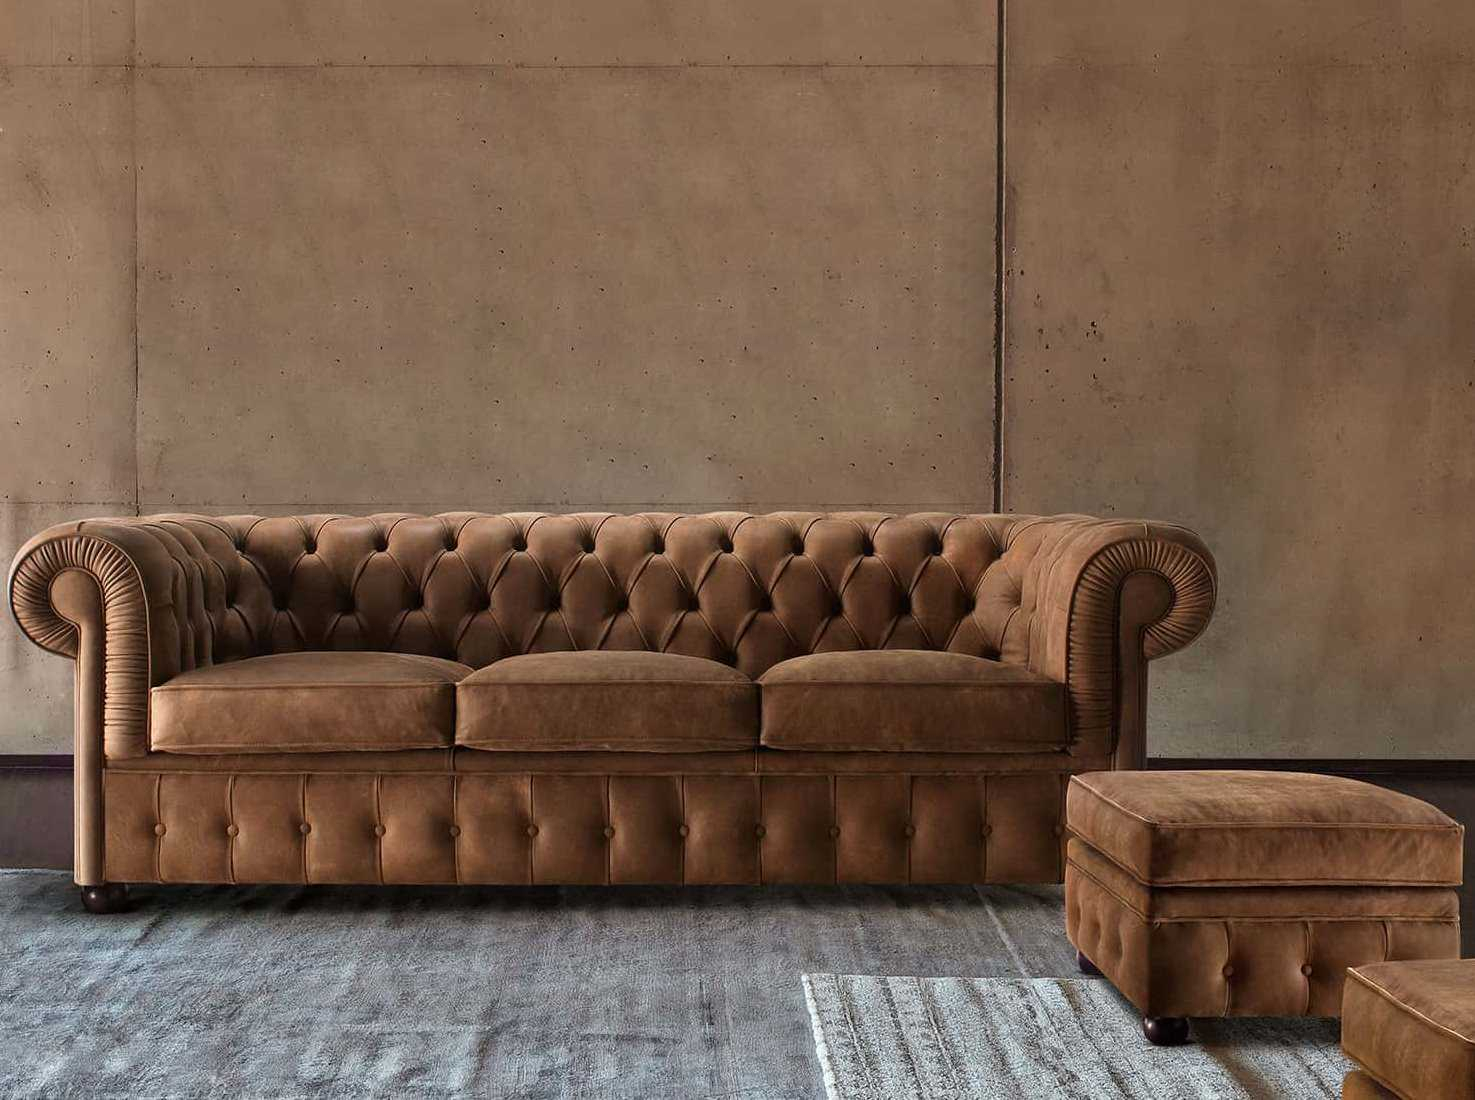 Chester Classic Leather Chesterfield Sofa – Diotti With Regard To Chesterfield Sofas (View 10 of 15)